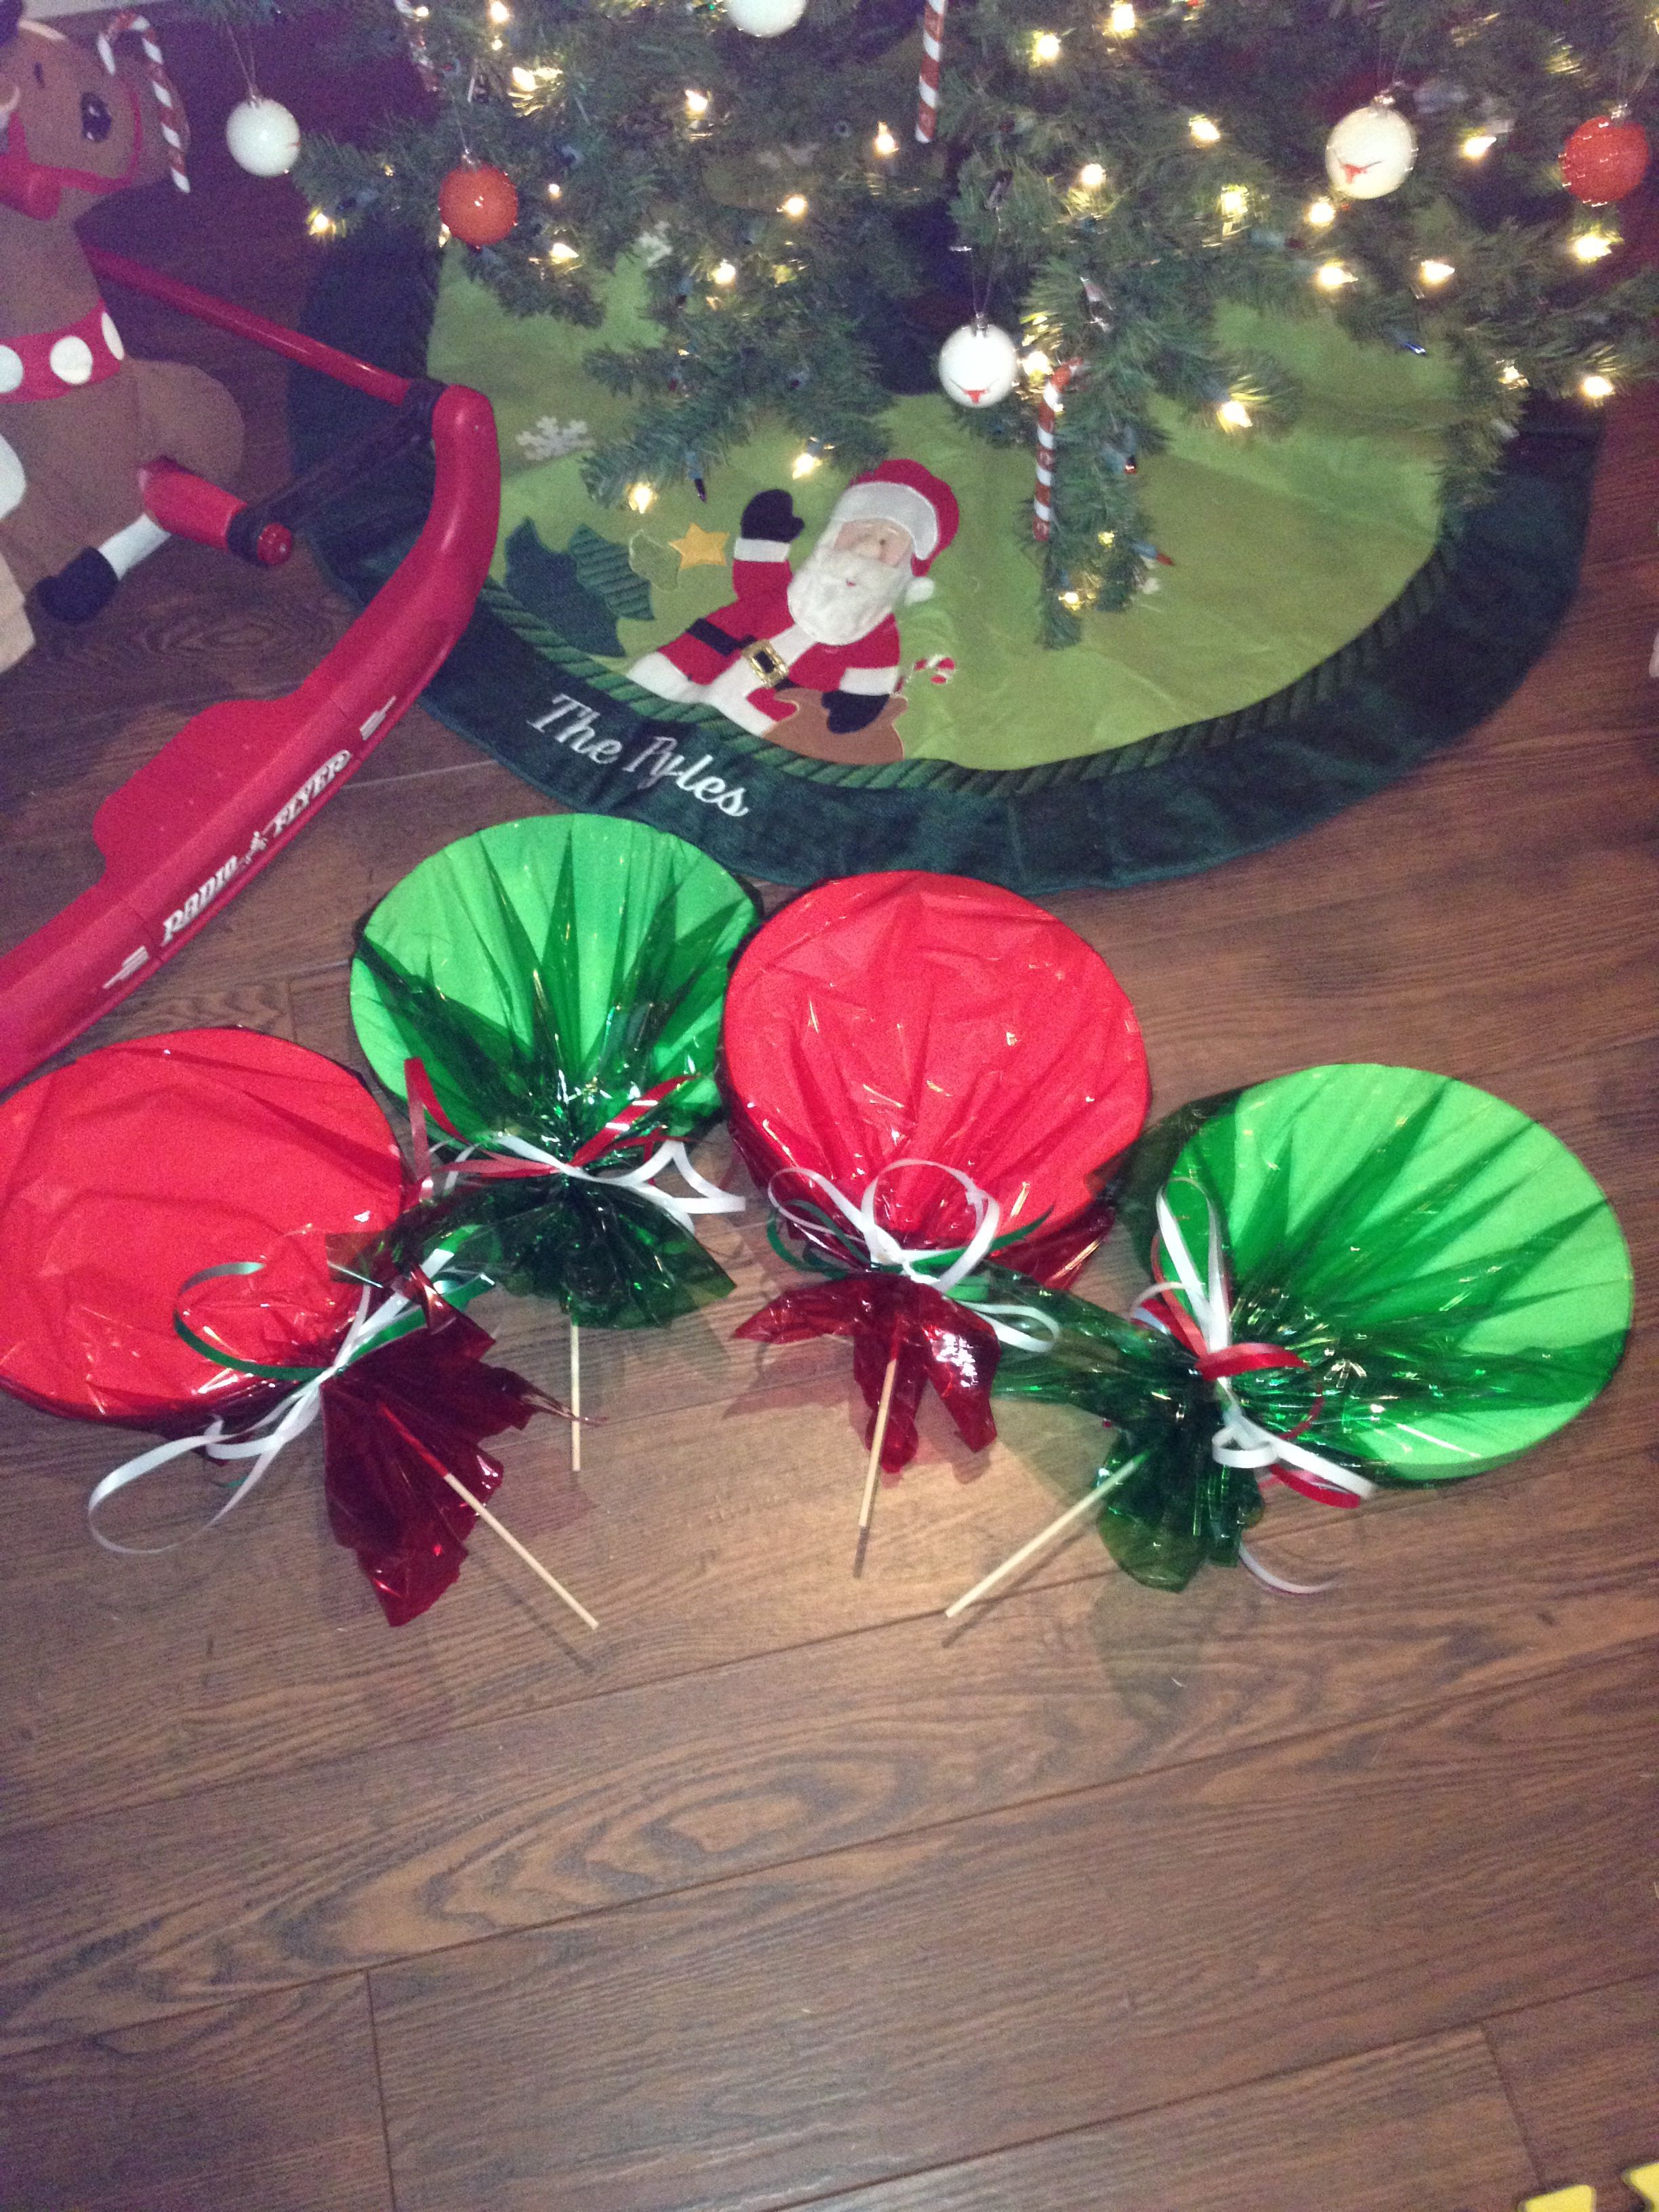 New blog post! DIY lollipops http://fitmomkaty.weebly.com/1/post/2013/12/wintery-day-project.html